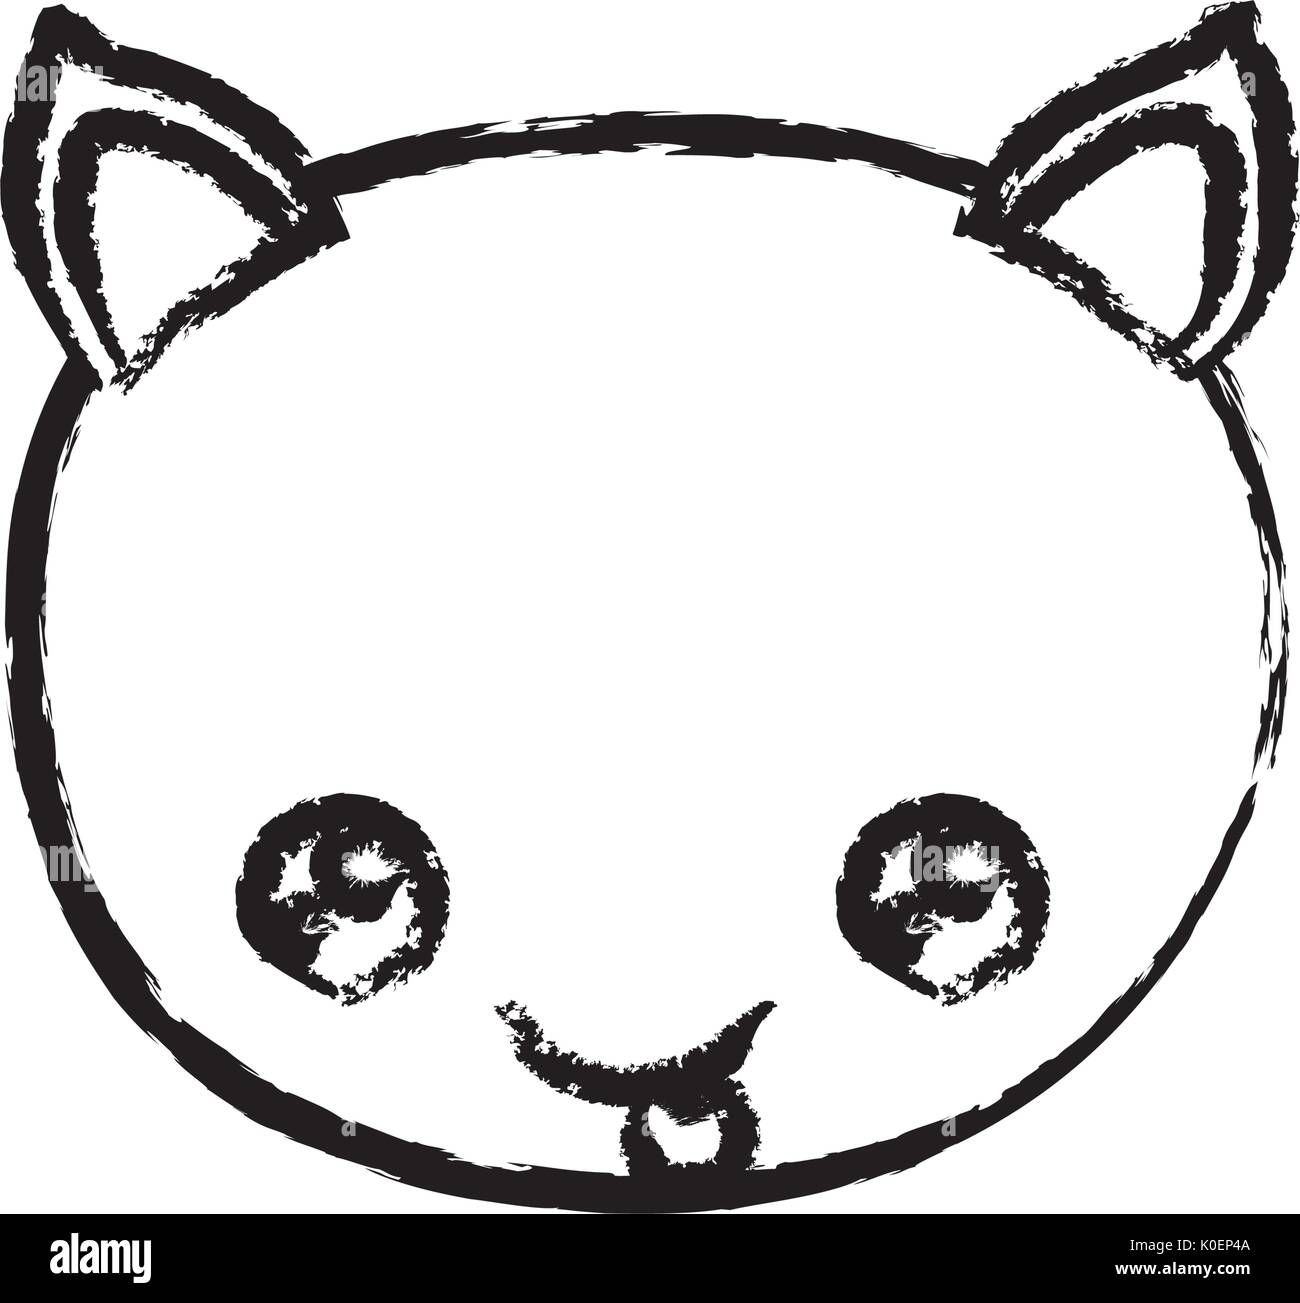 blurred tick contour of kawaii caricature face cat cute animal tongue out expression - Stock Image